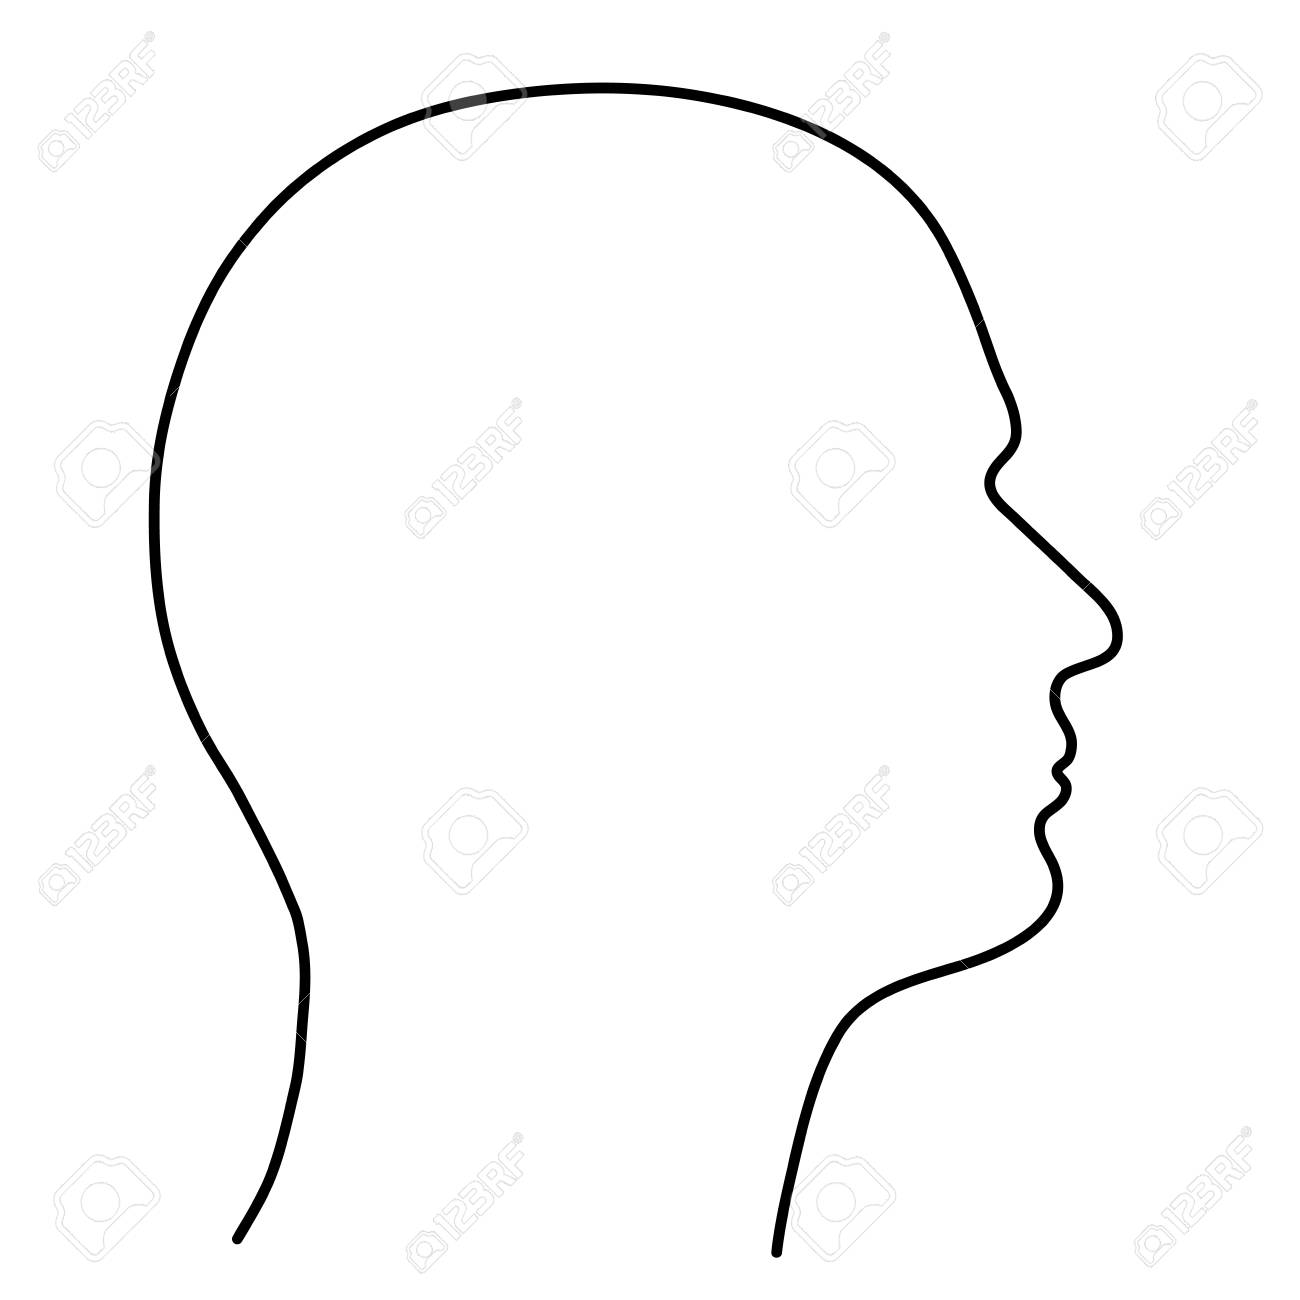 Human head of a man, the outline of black lines on a white background. Vector illustration. - 111995644